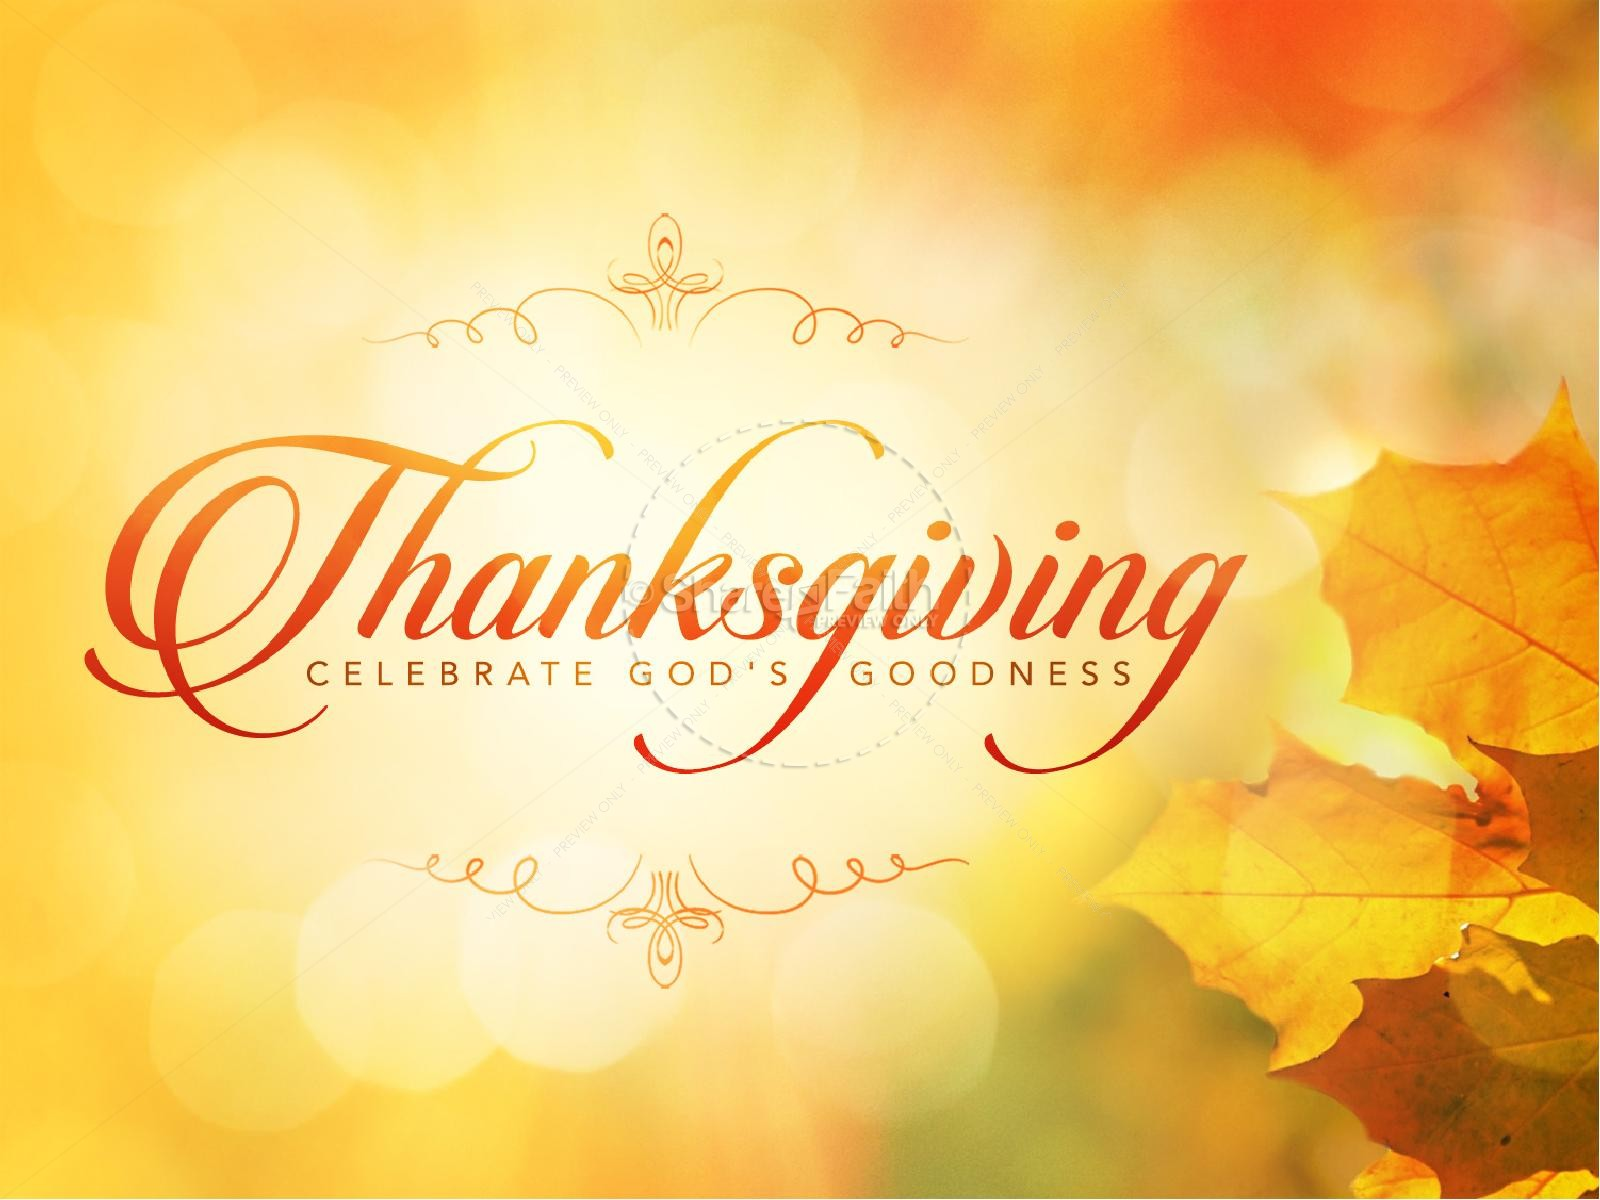 Top fall graphics and thanksgiving graphics for church prayer for thanksgiving celebrate gods goodness christian powerpoint kristyandbryce Choice Image